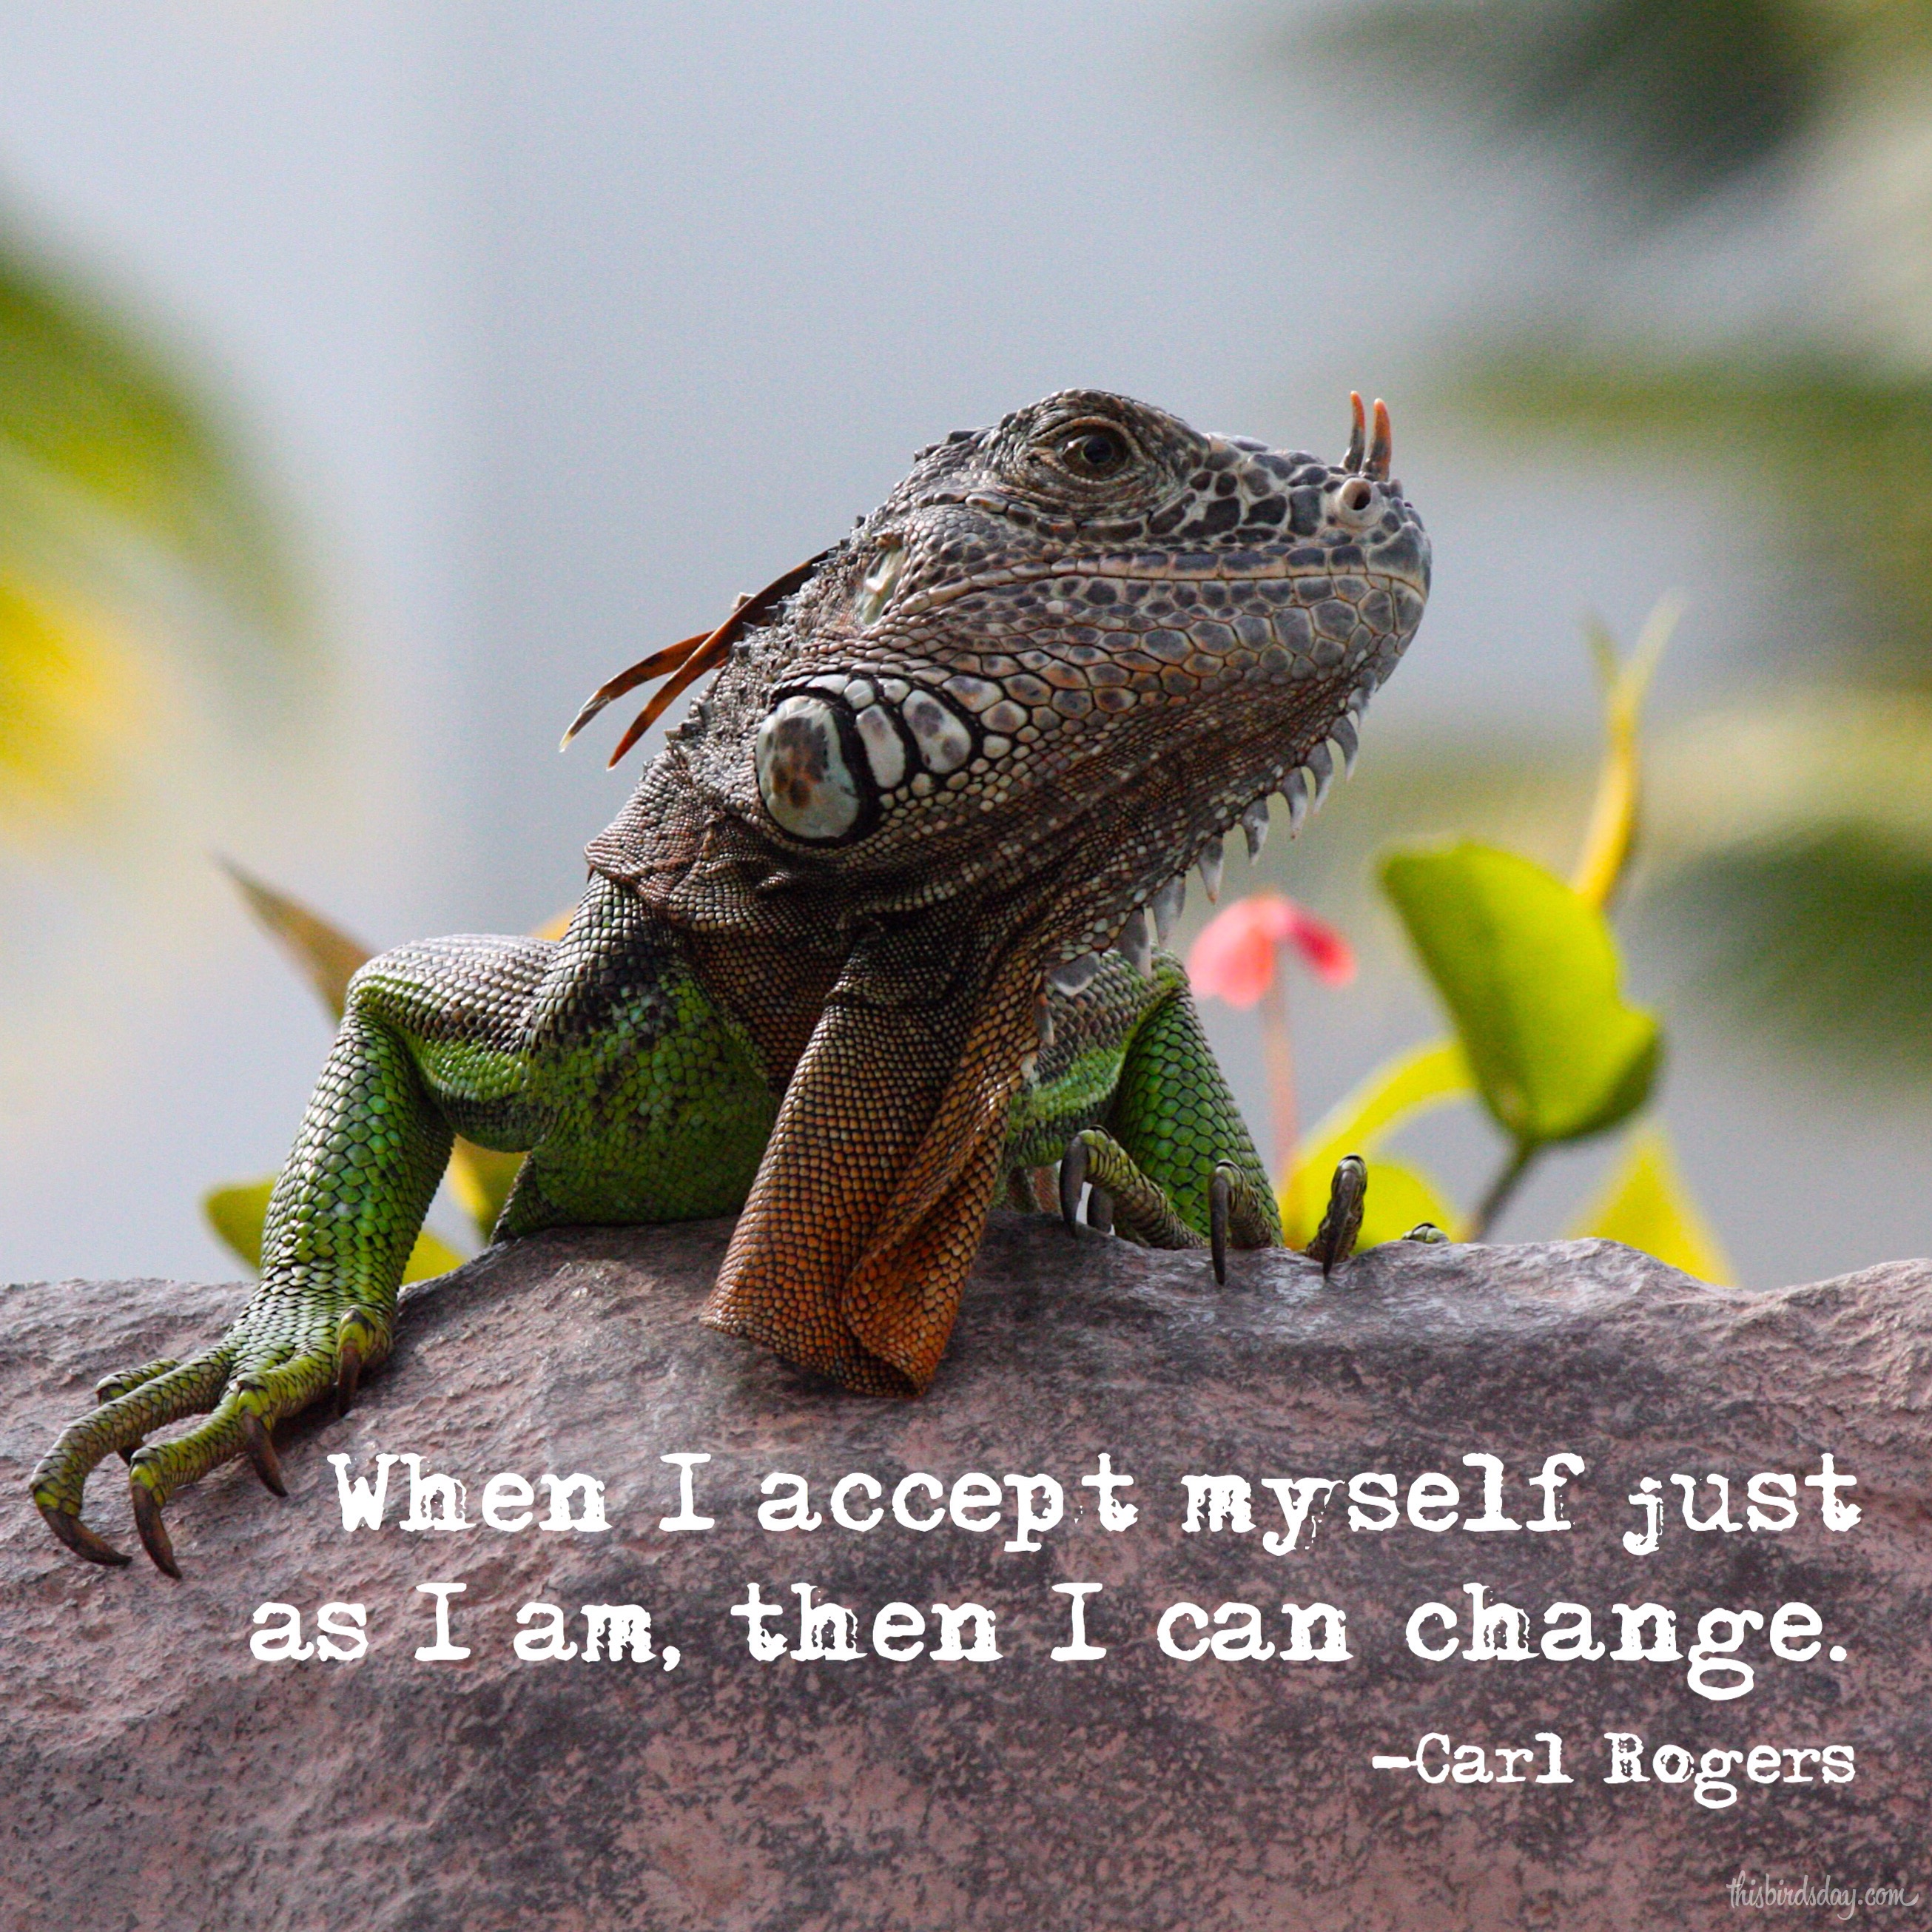 """""""When I accept myself just as I am, then I can change."""" Carl Rogers Photo Copyright Sheri Landry"""